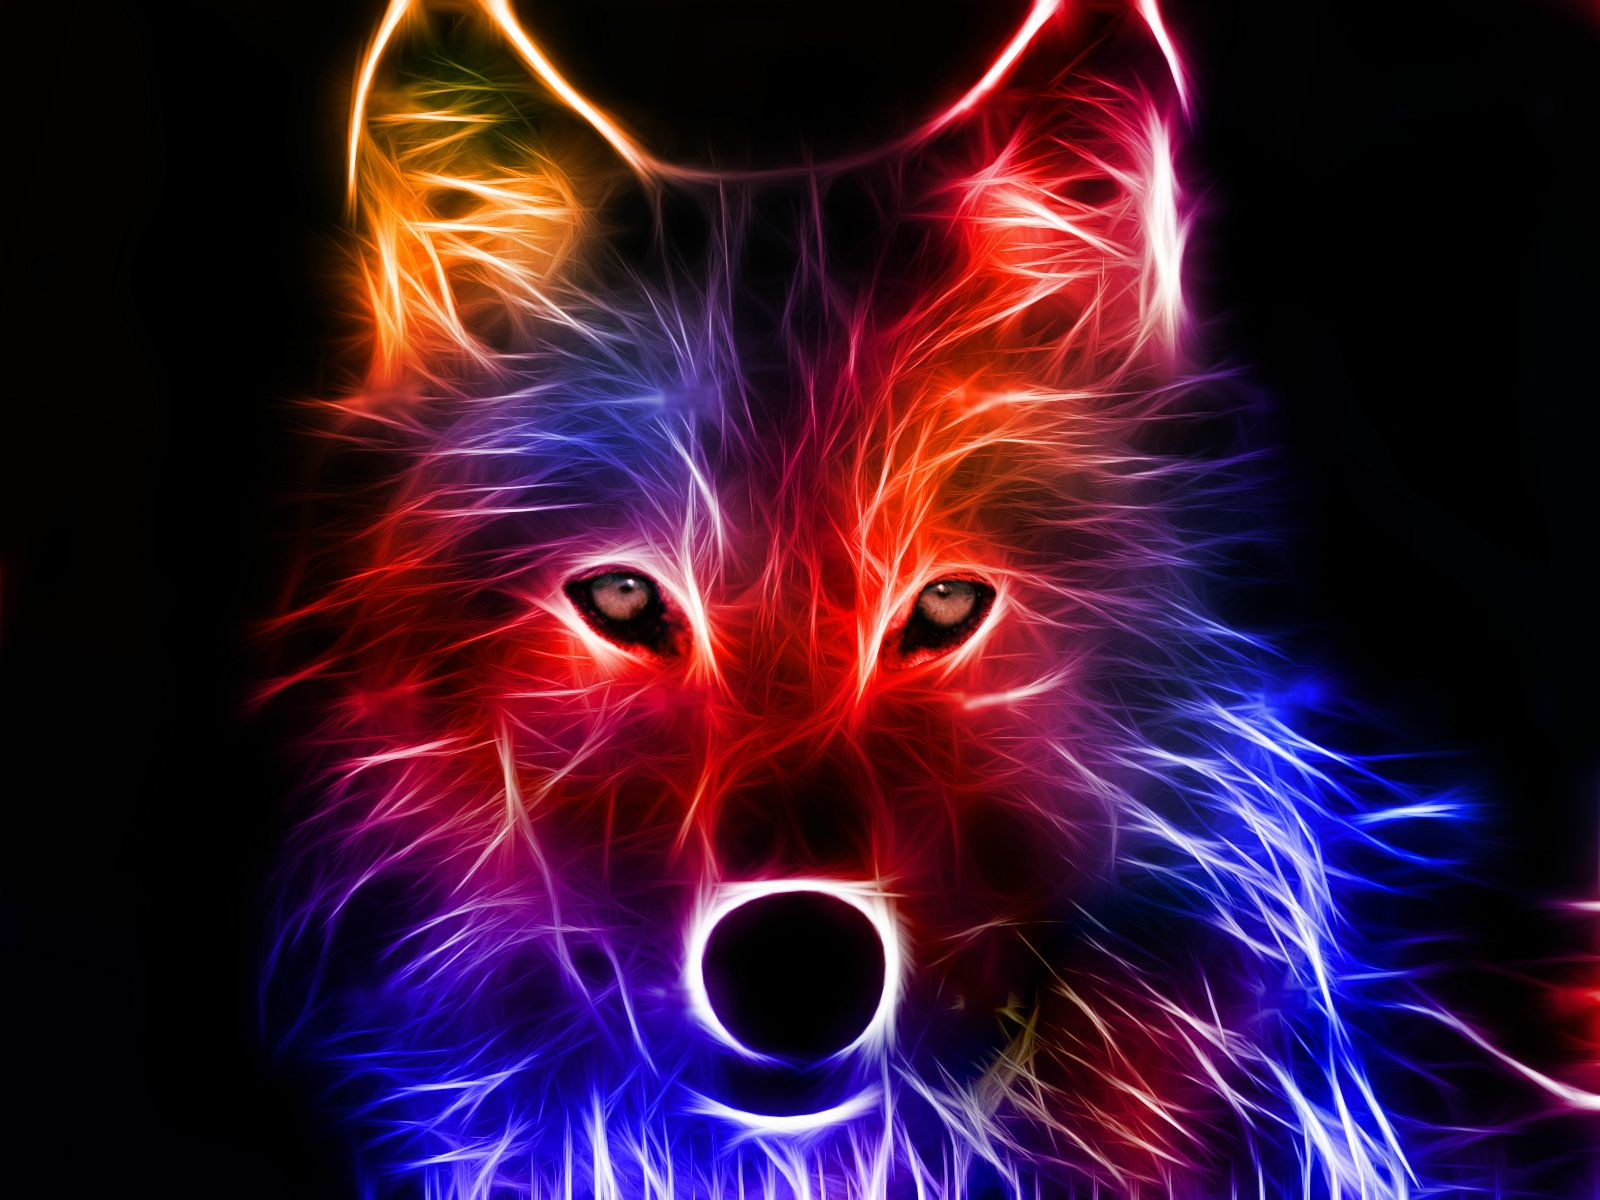 Colour Dog Stripes Glow Awesome Colorful Backgrounds Wallpaper 8348 1600x1200